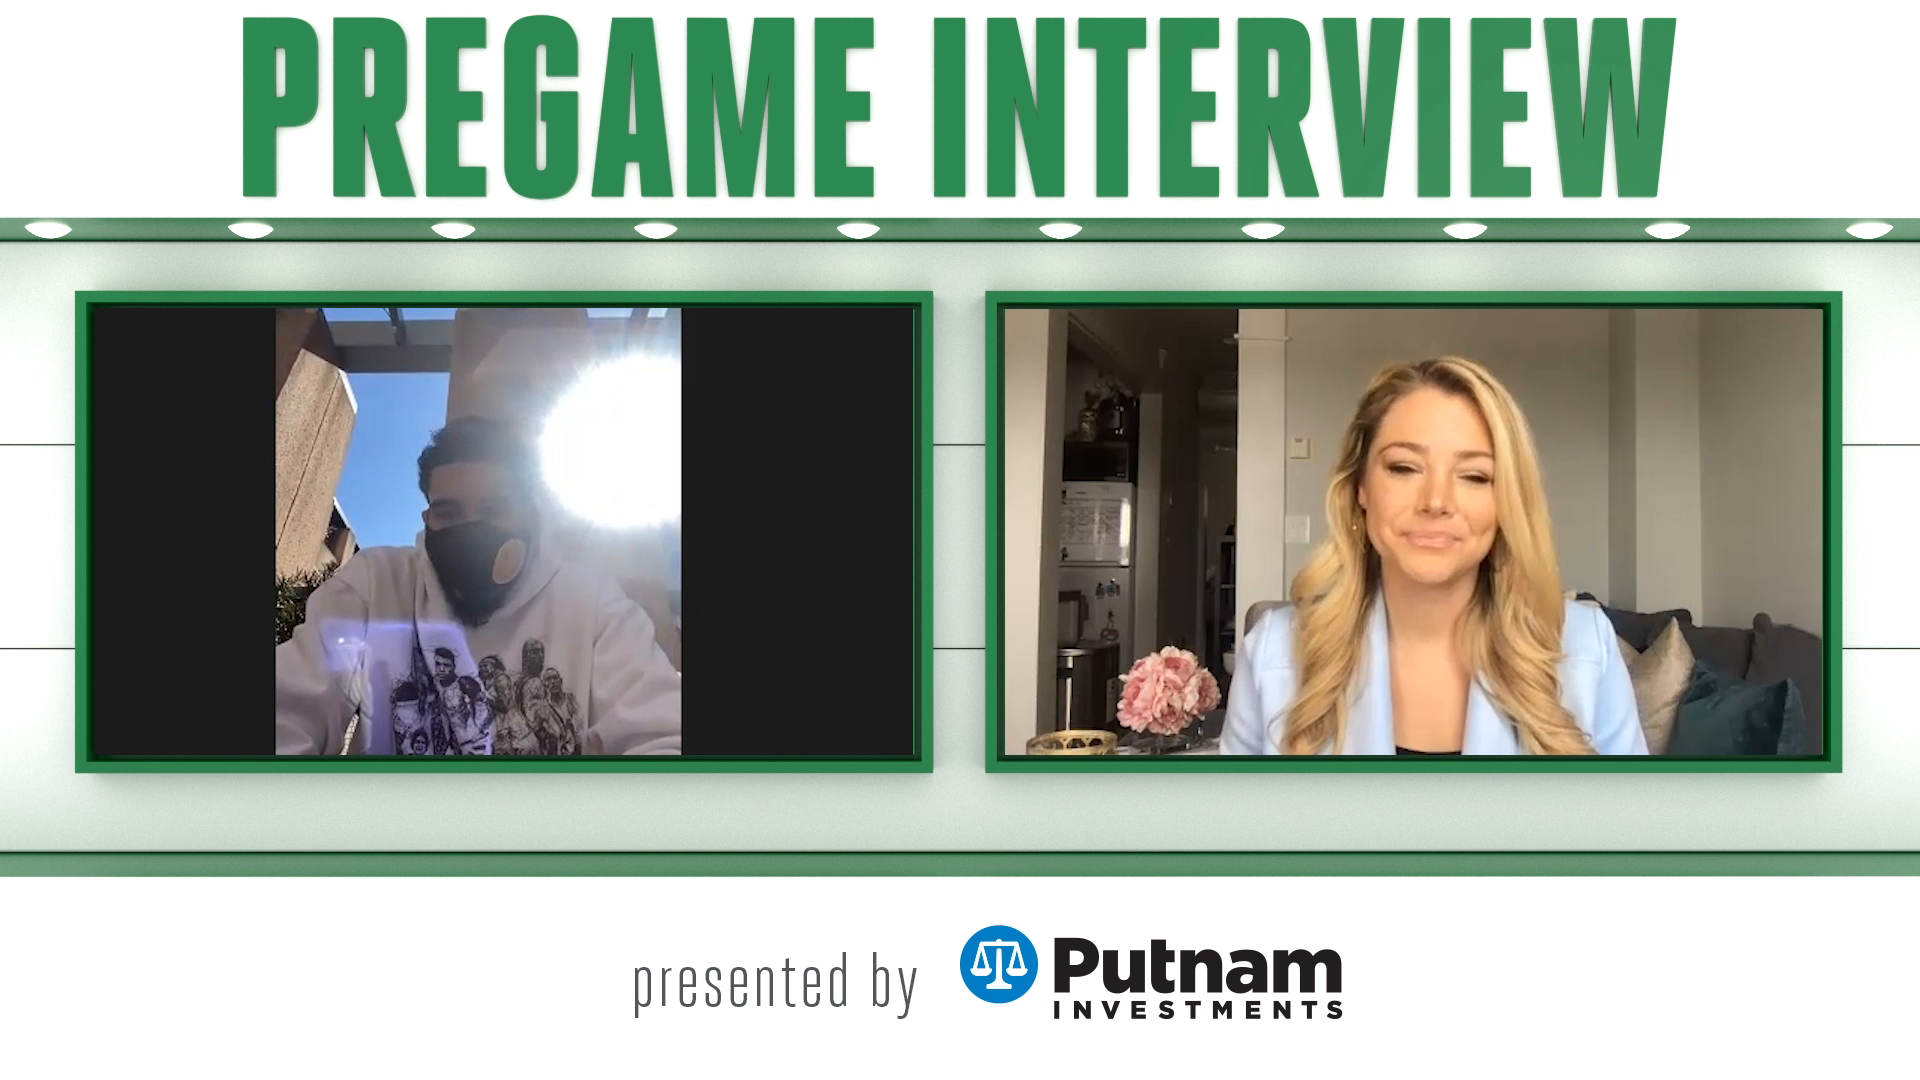 2/24 Putnam Pregame Interview: 'It's A Special Moment'